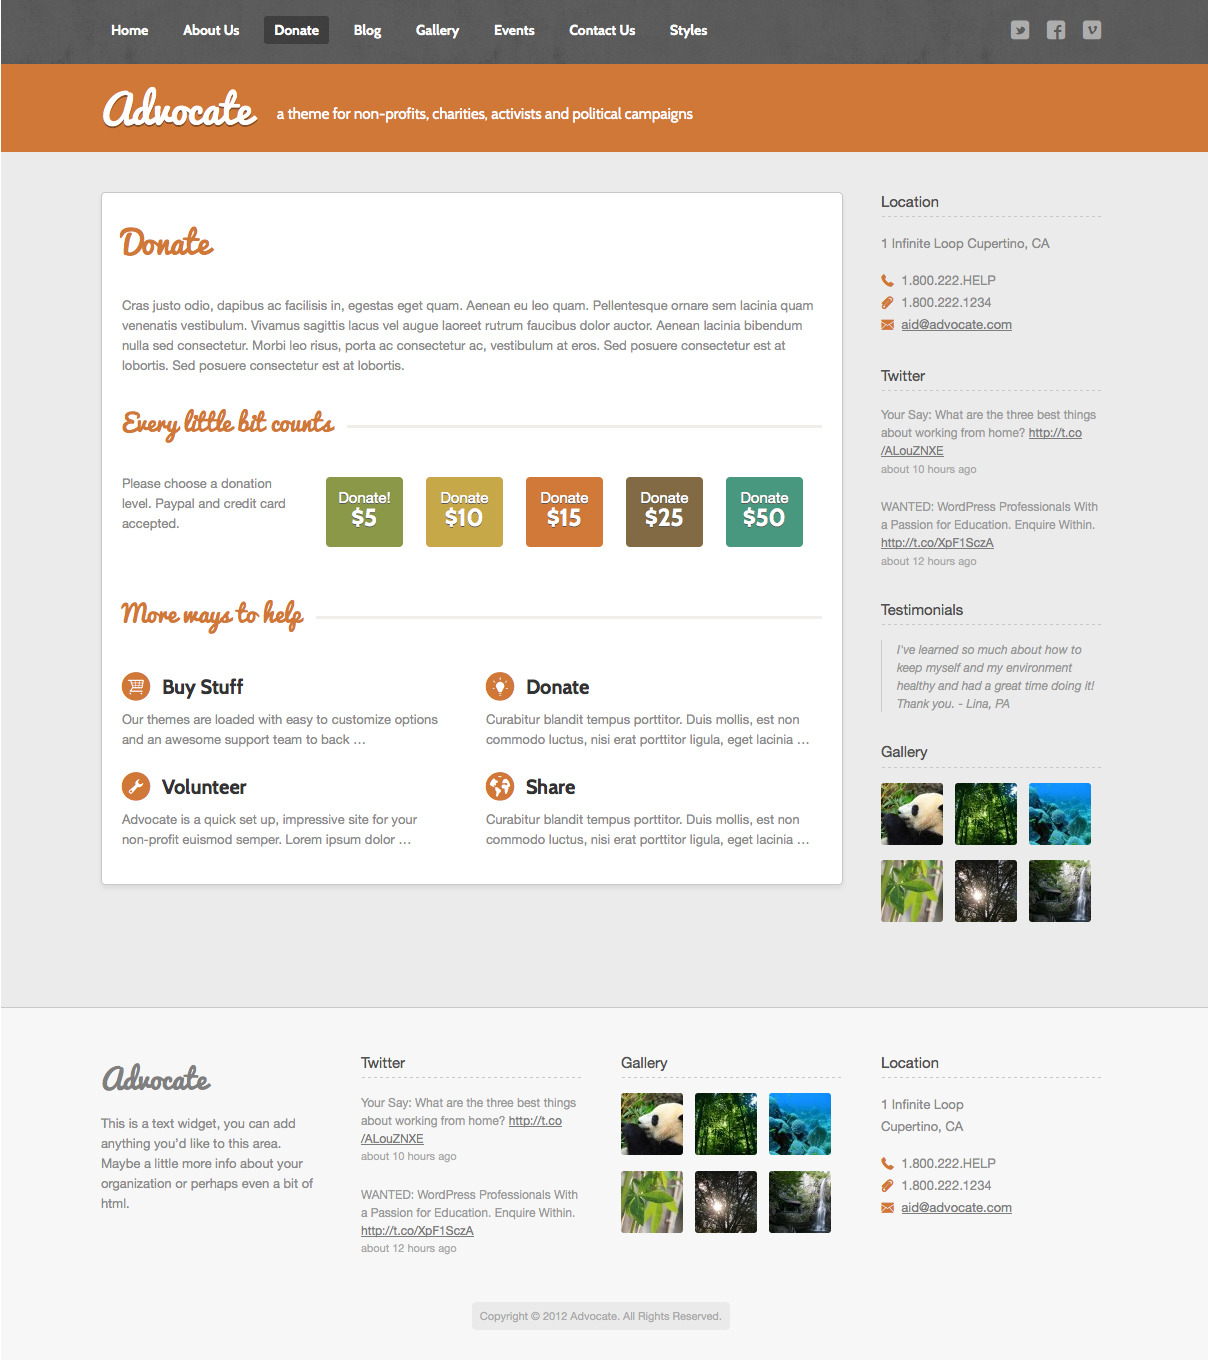 Advocate - A Nonprofit Responsive HTML Template  - Donate Page